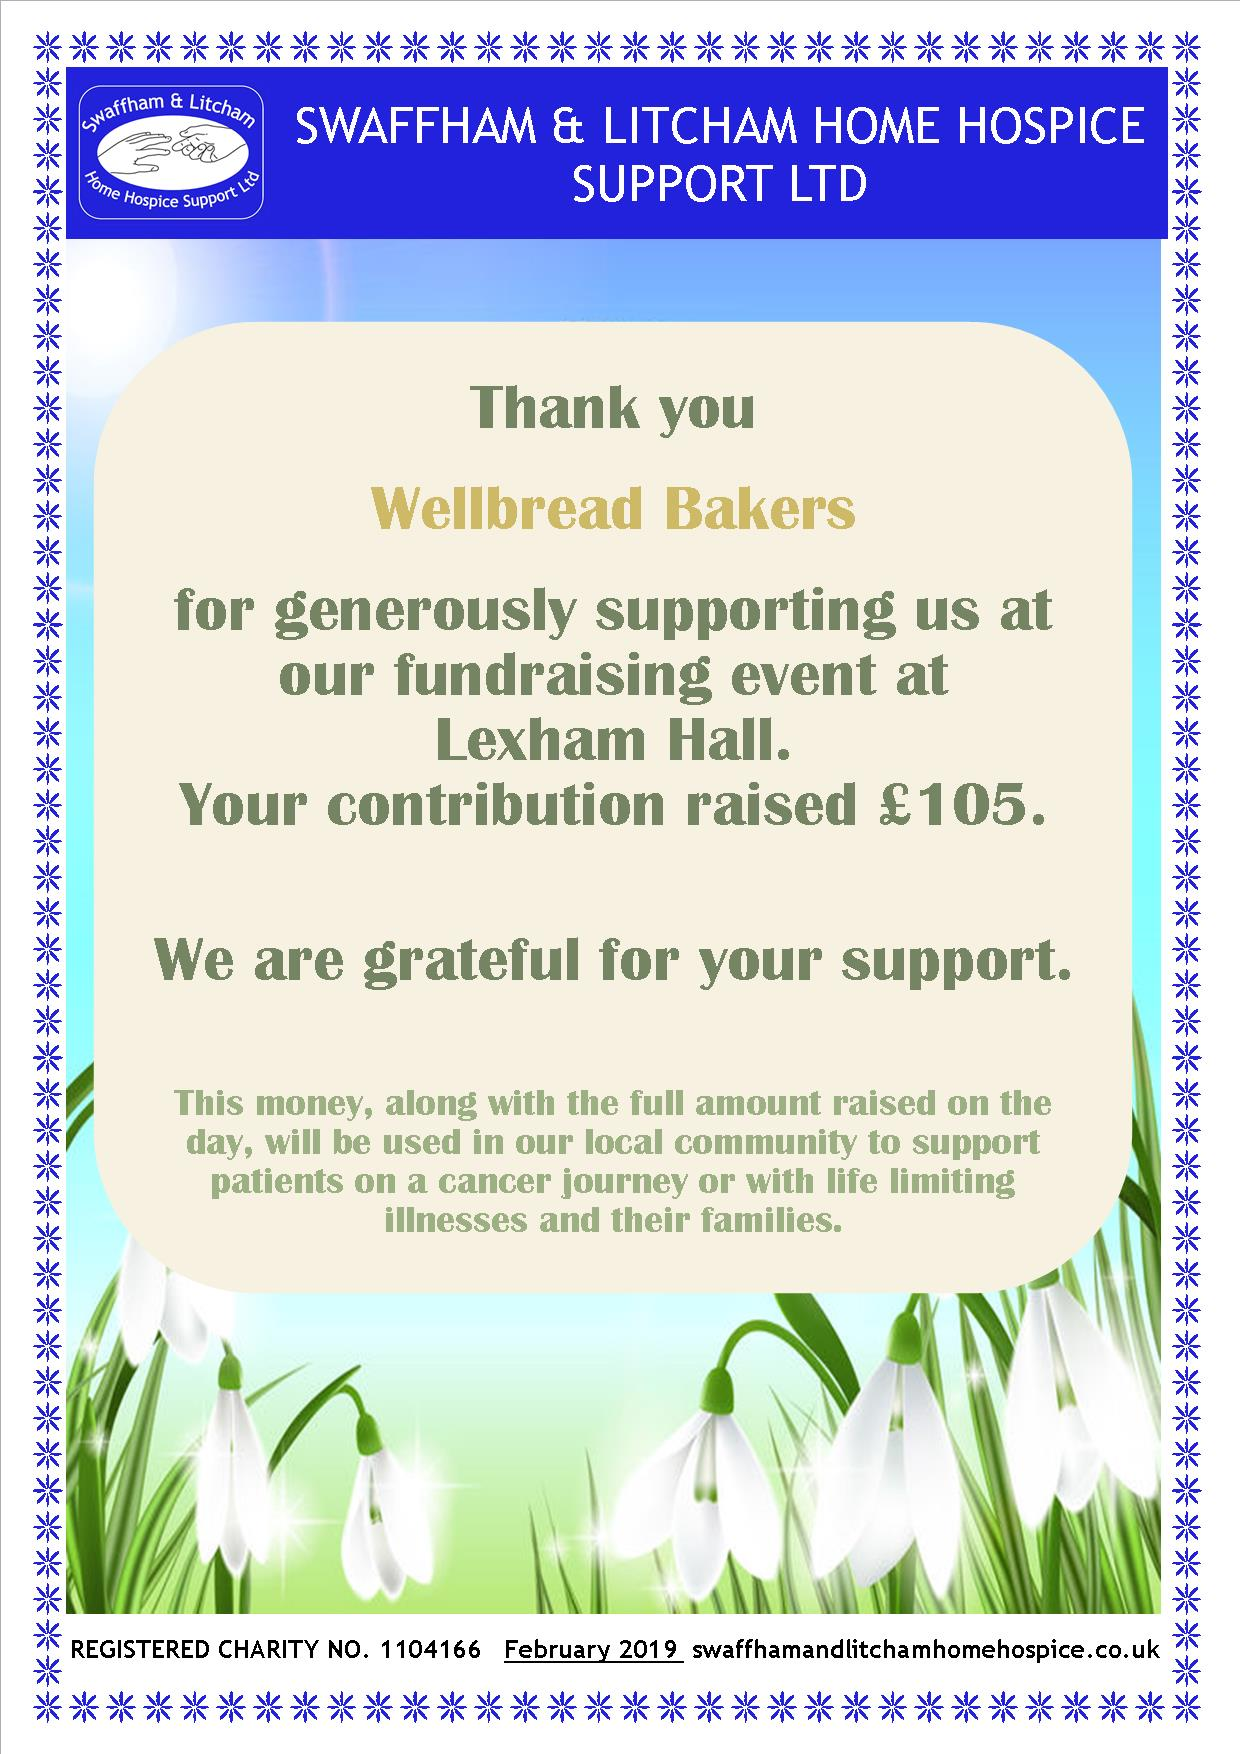 Thank you for supporting our Snowdrop Walk fundraising event at Lexham Hall, February 2019